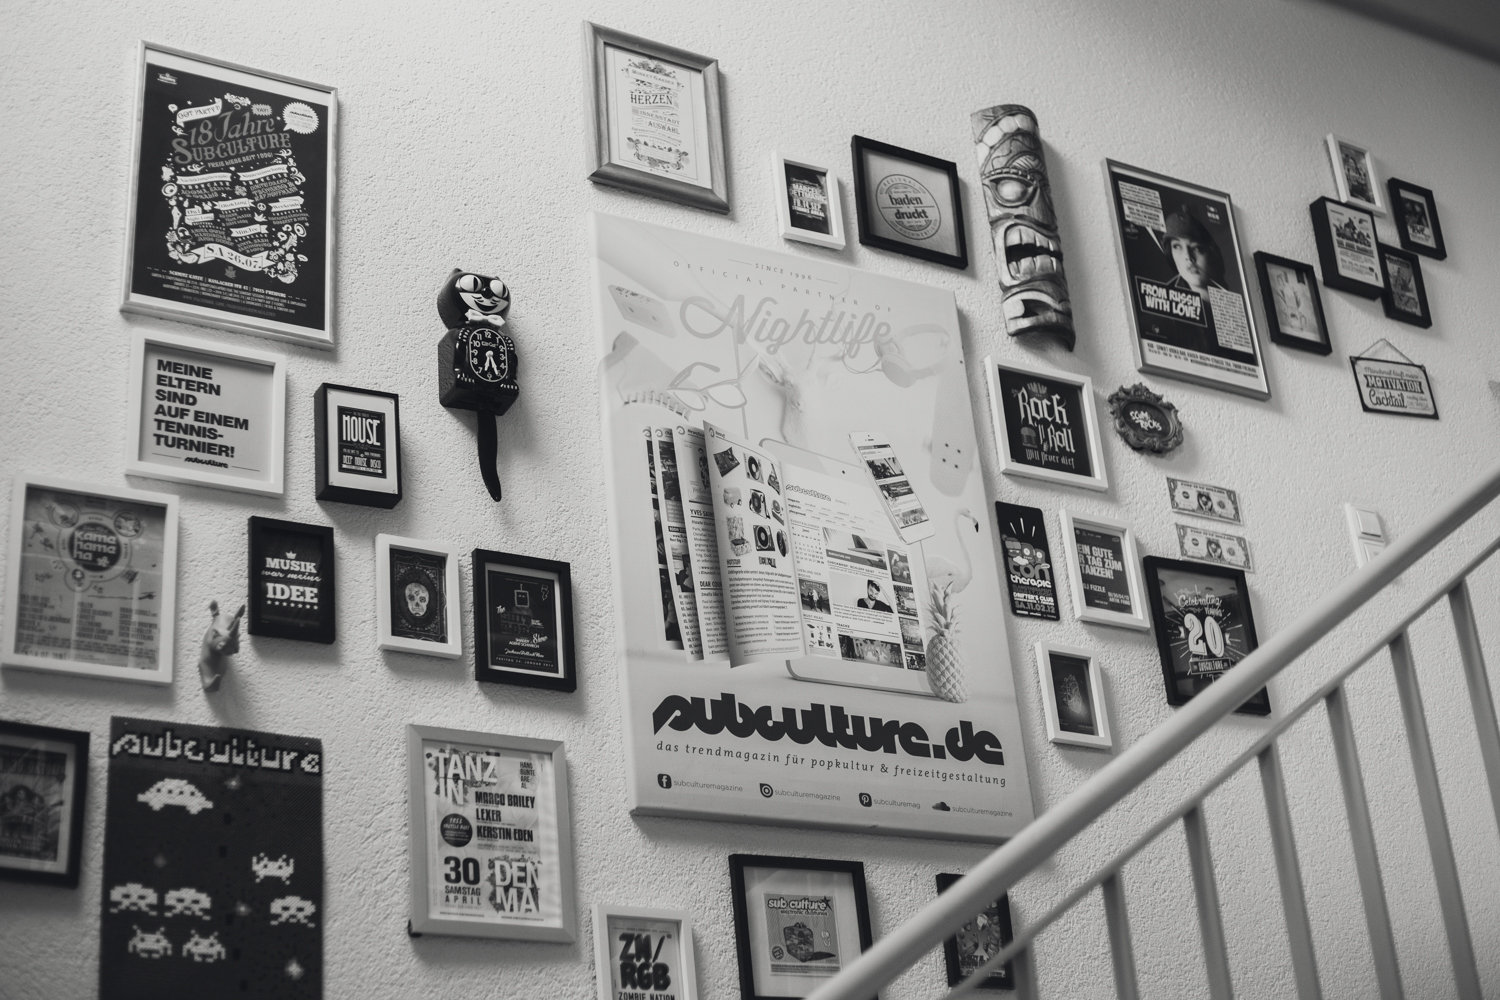 20 Jahre subculture Magazine Office-Party